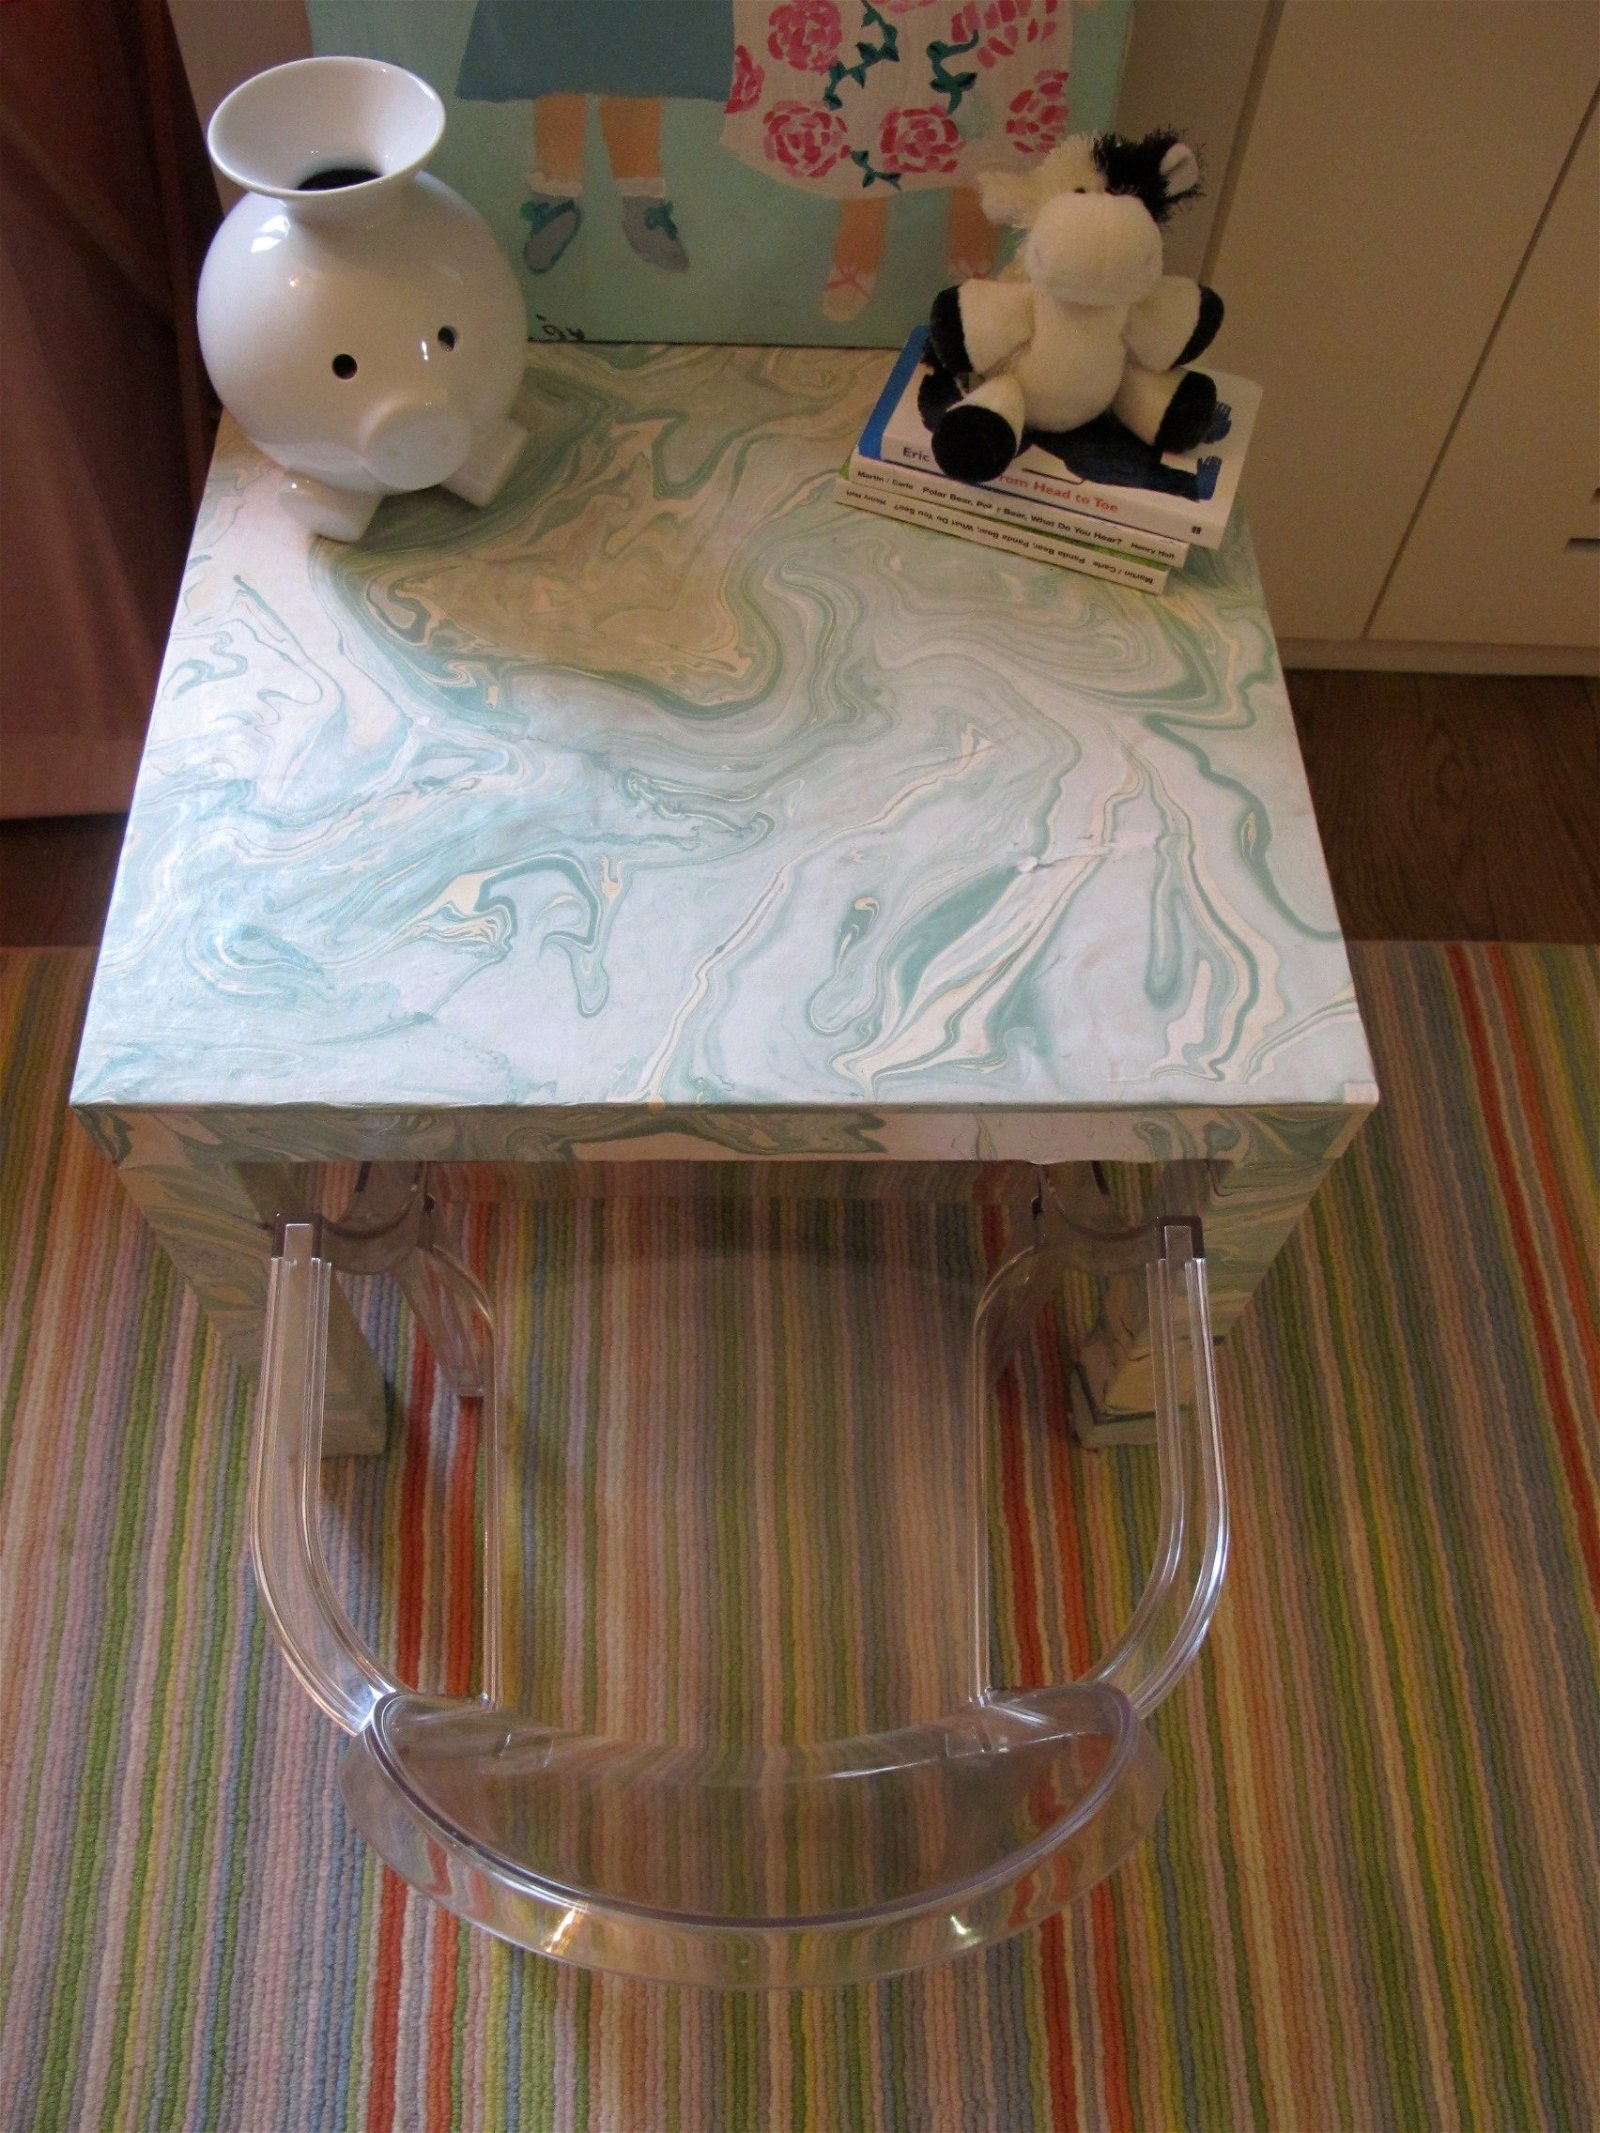 26 Ikea Lack Hack With Marbled Paper via simphome